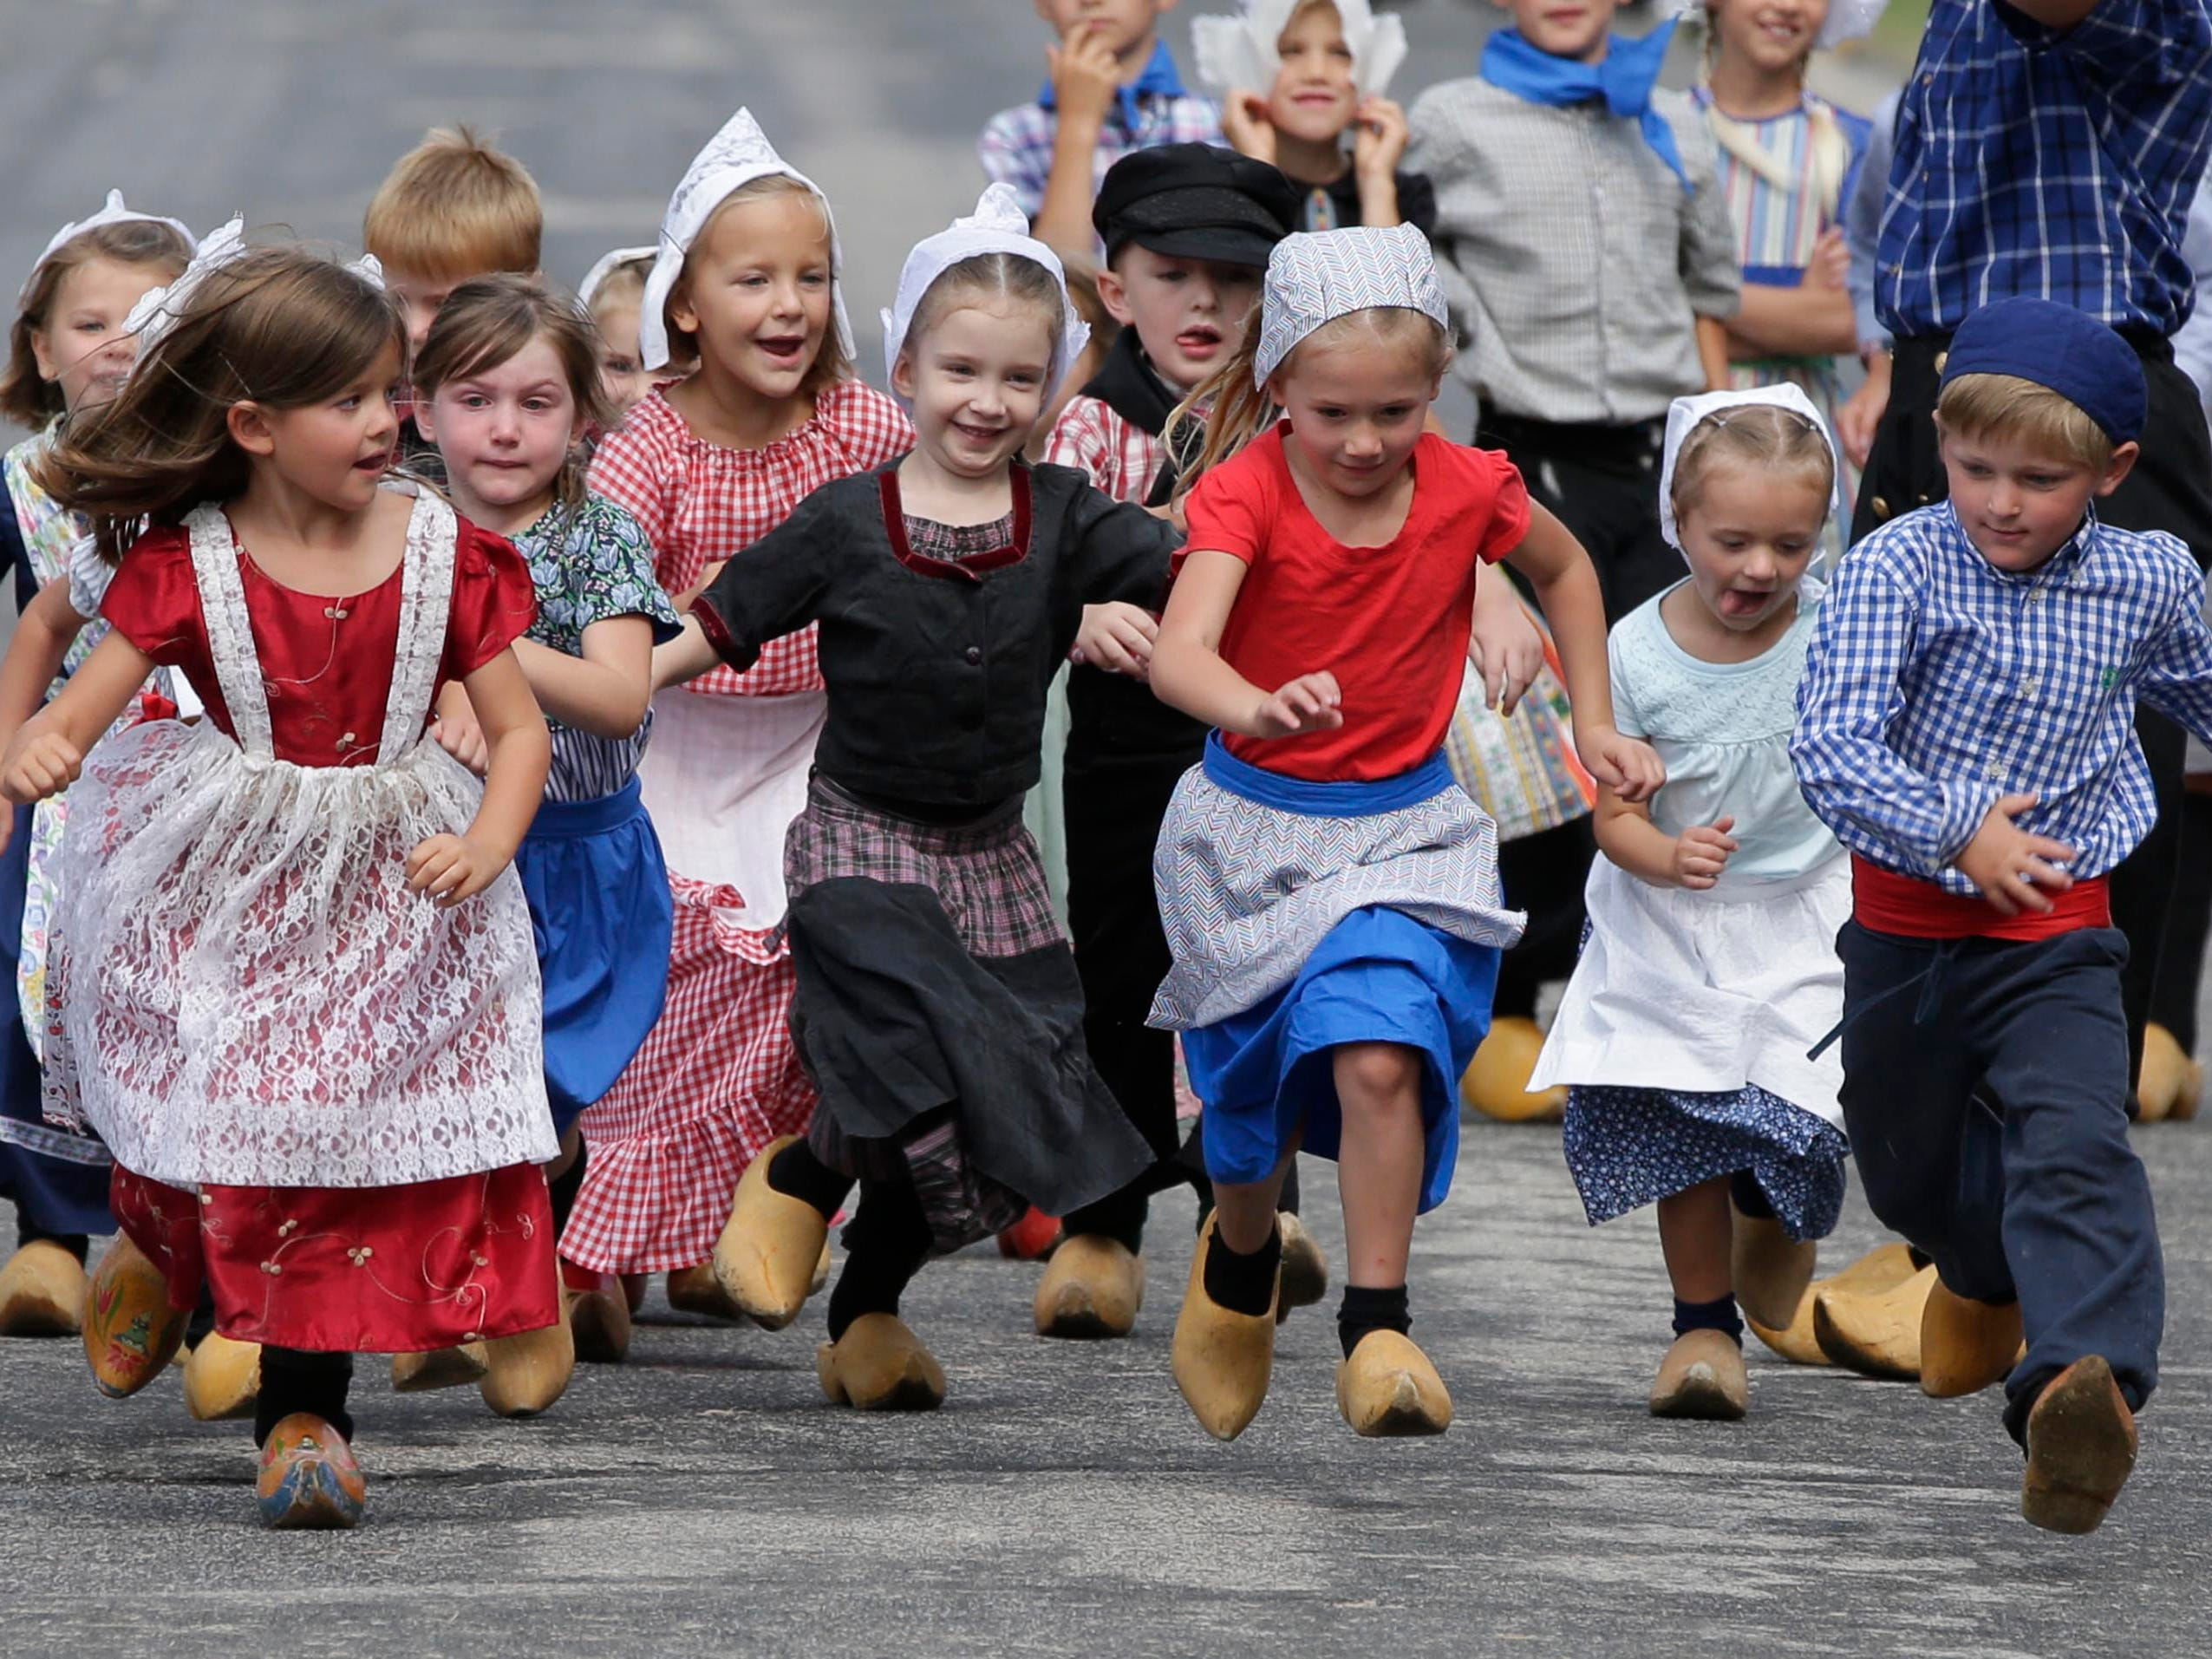 Children have different expressions during the wooden shoe races during the 71st Annual Holland Festival, Friday, July 27, 2018, in Cedar Grove, Wis.